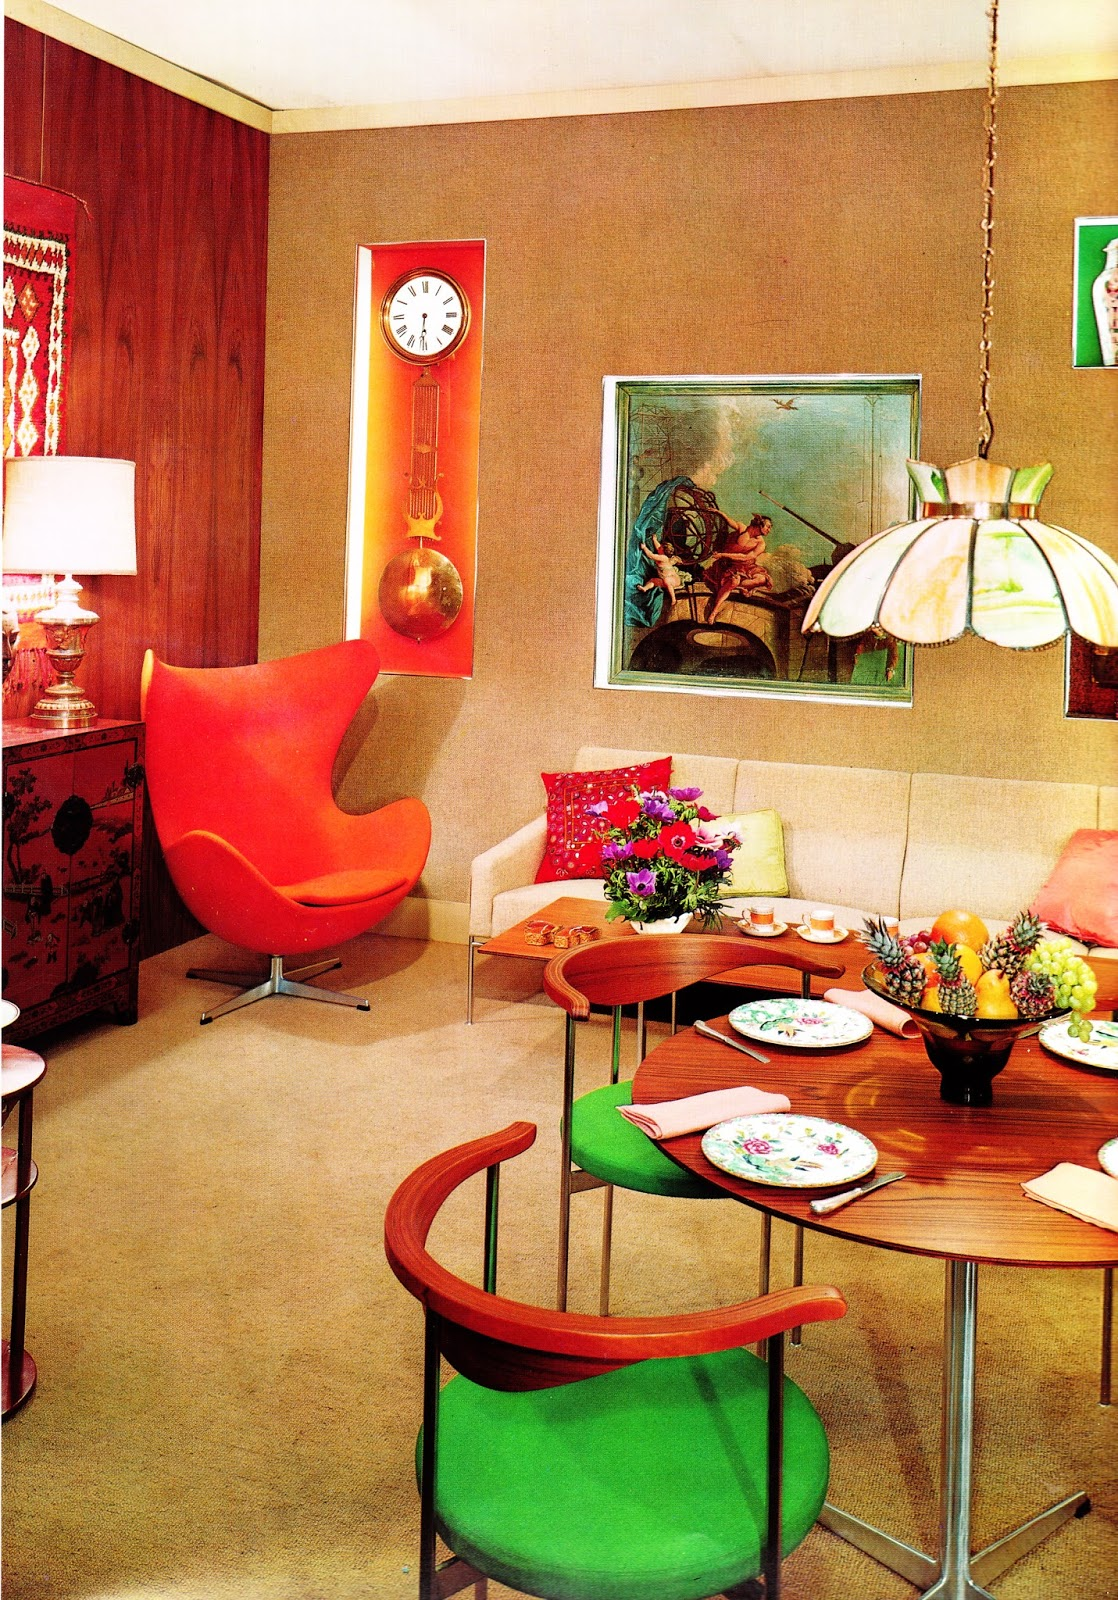 1960s interior d cor the decade of psychedelia gave rise for Interior design usa